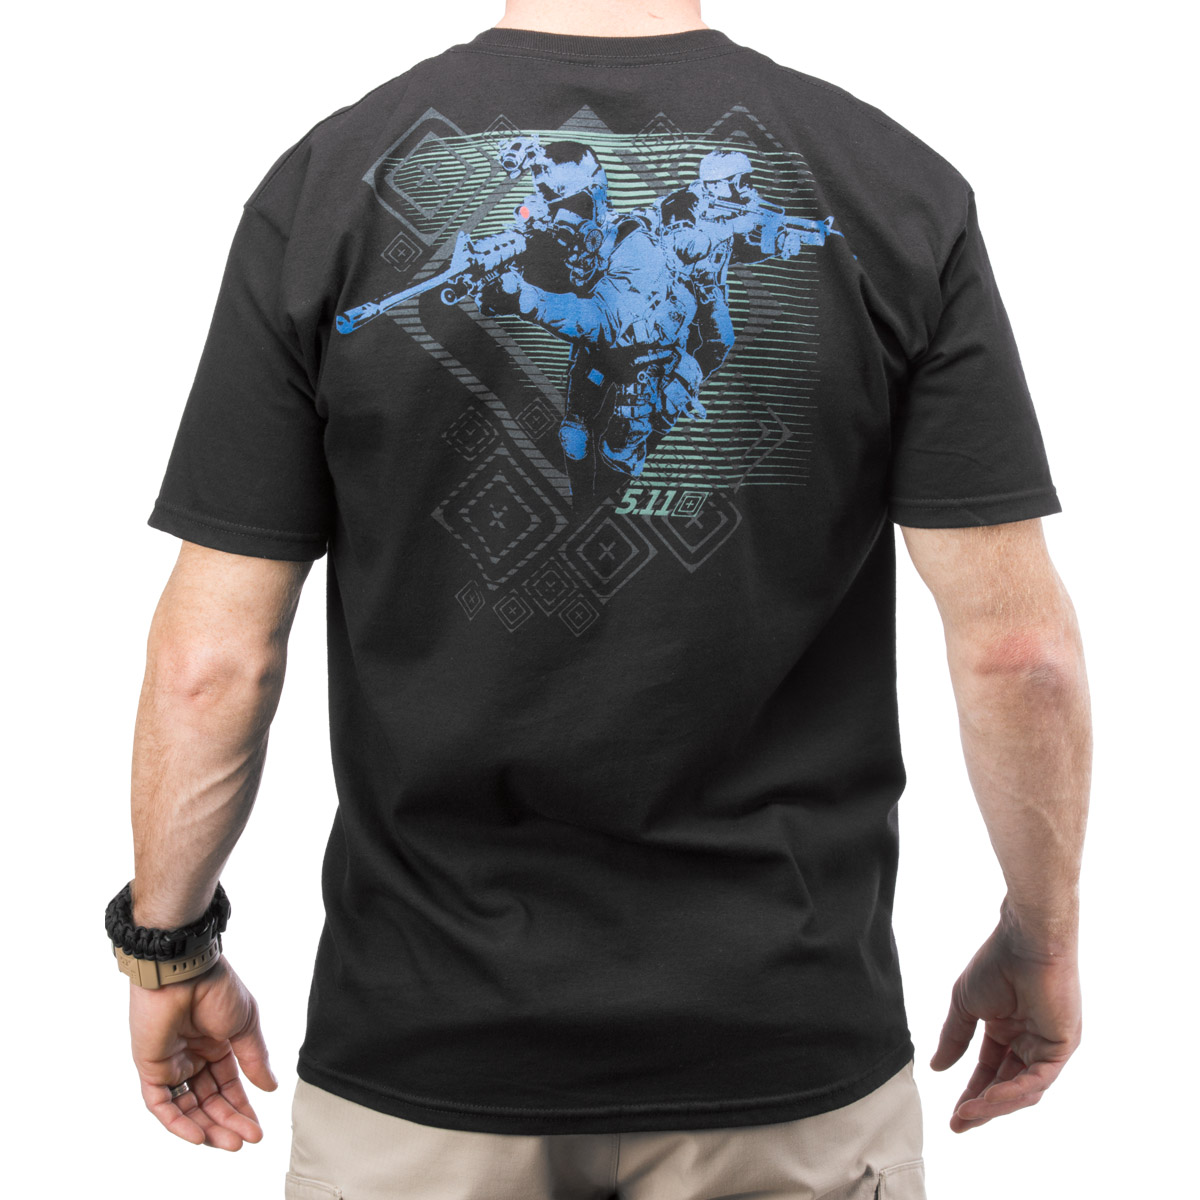 Red scope logo t shirt black military 1st for 6 dollar shirts coupon code free shipping